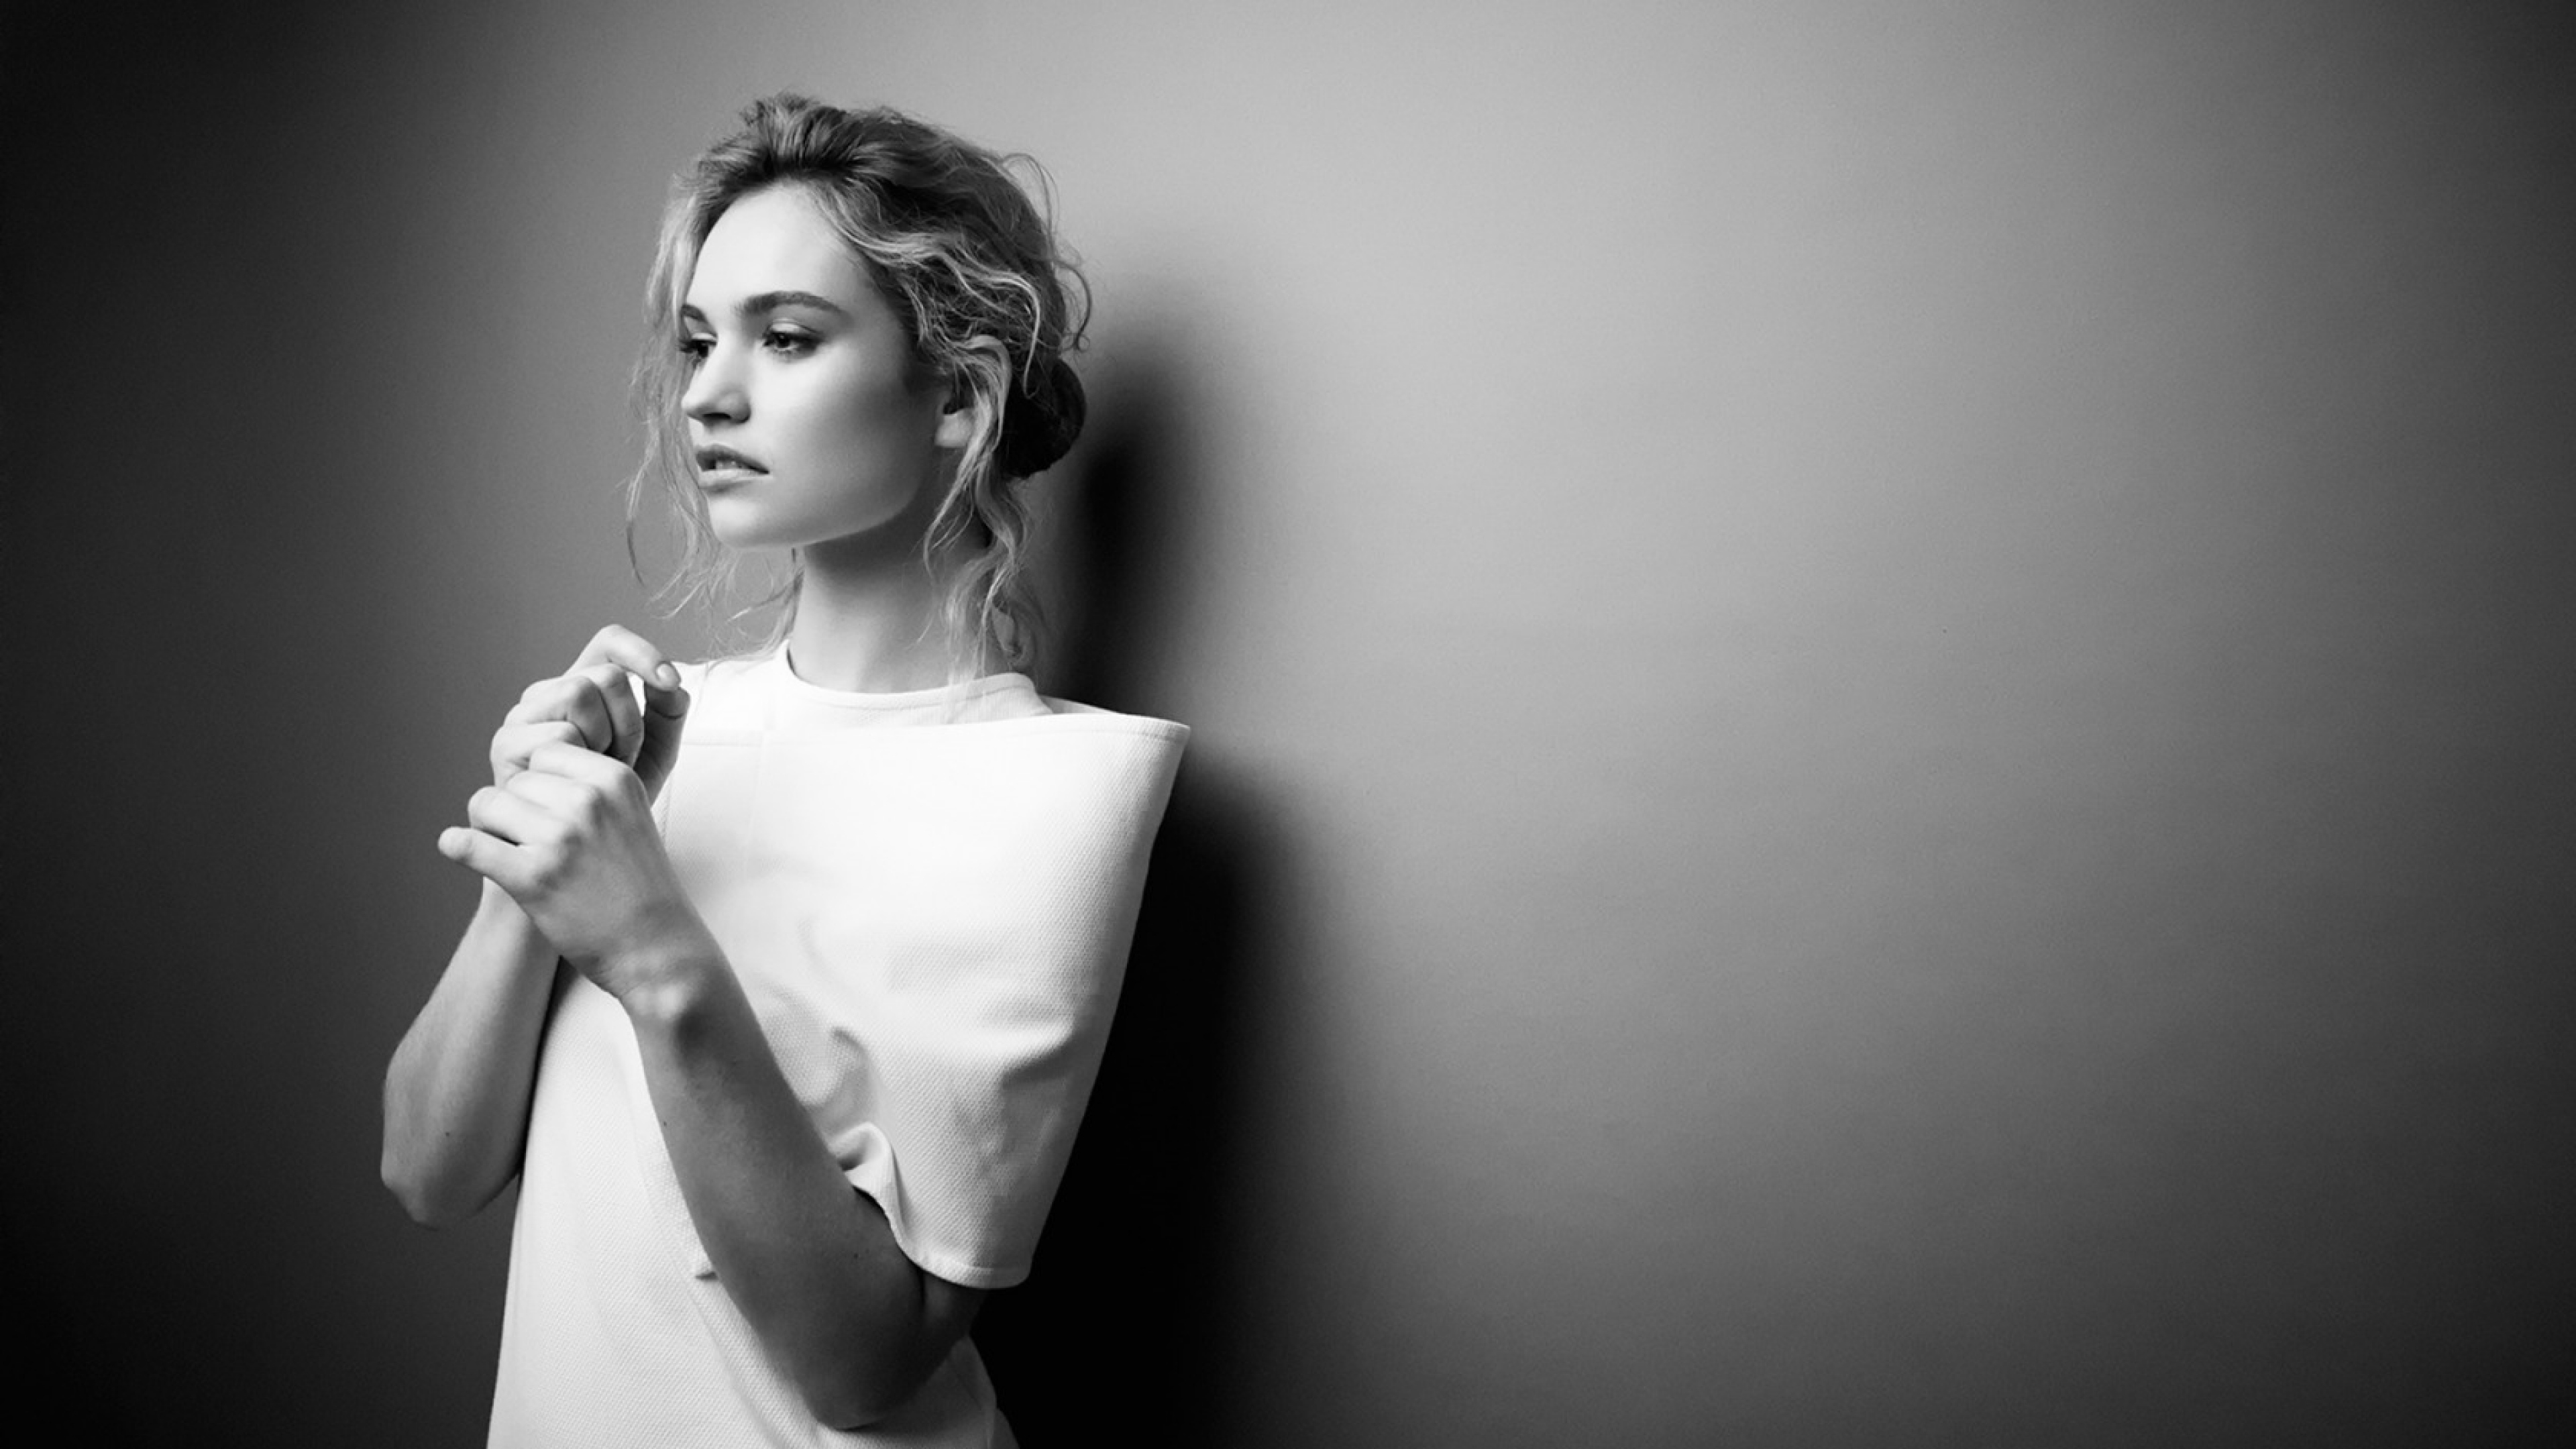 Lily James Celebrity Photoshoot Glamour 4k 2054 Wallpapers and 3840x2160